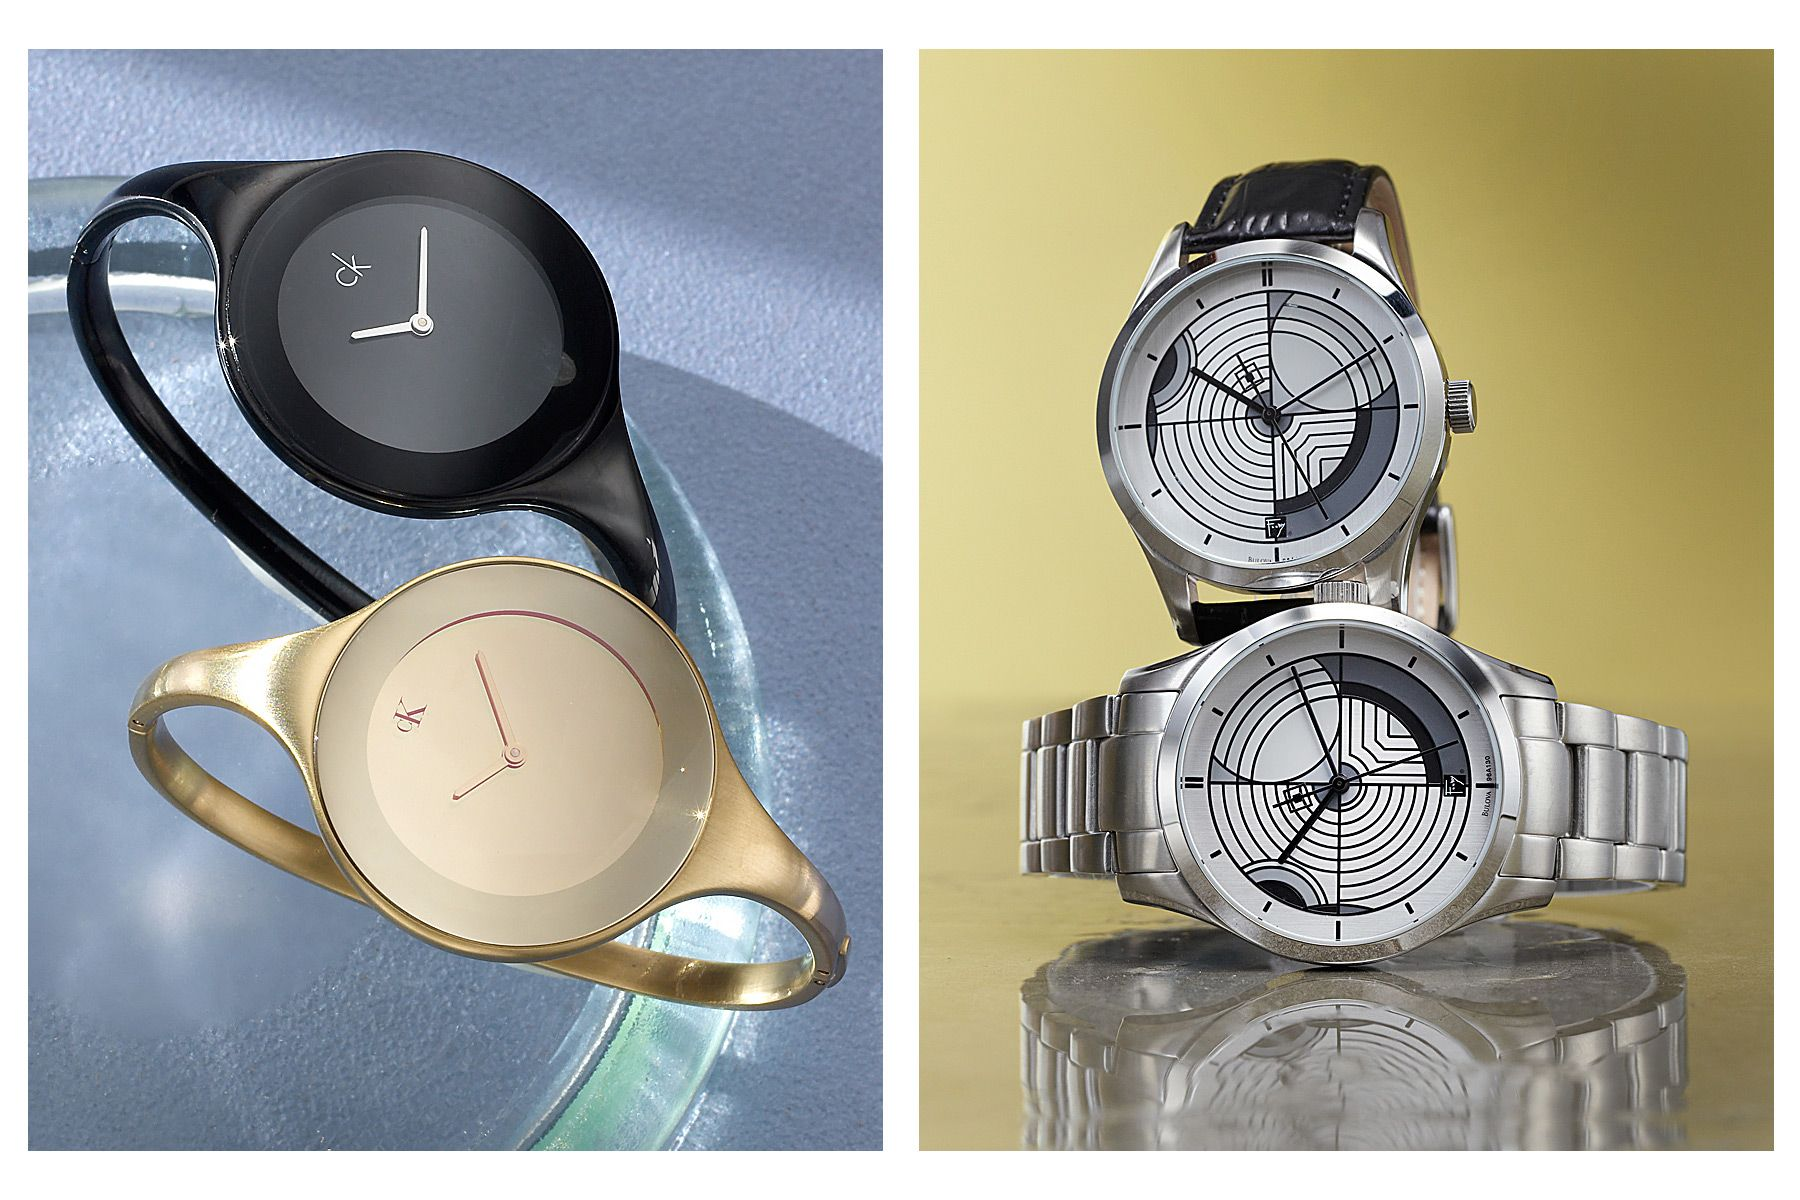 Watches-2-Images.jpg